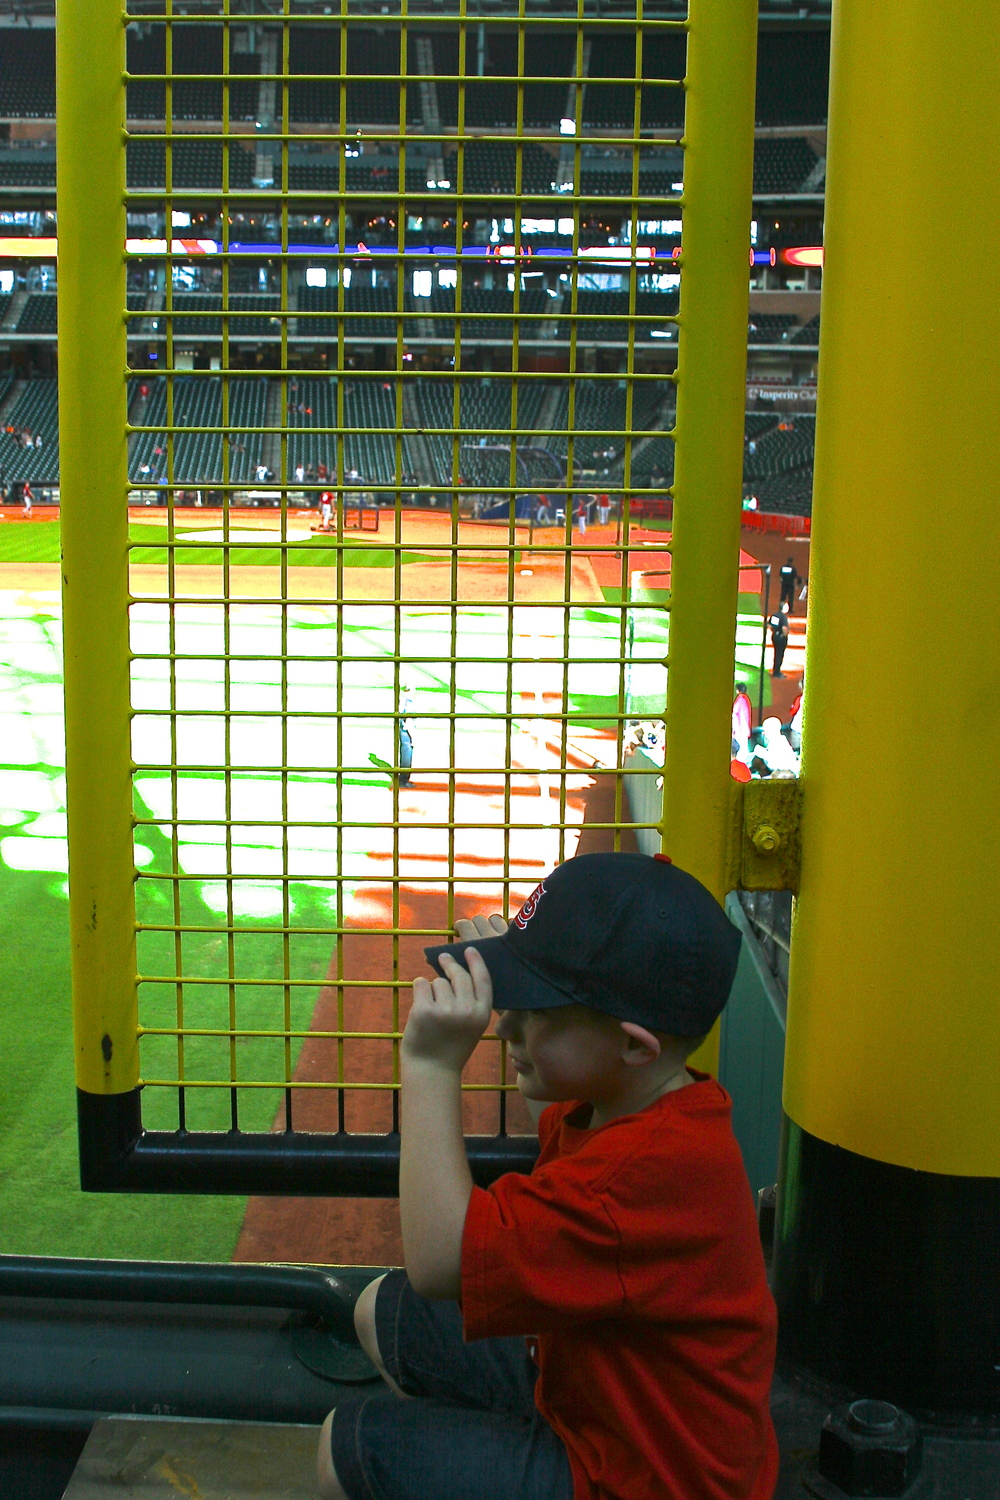 Kid hiding behind the foul pole